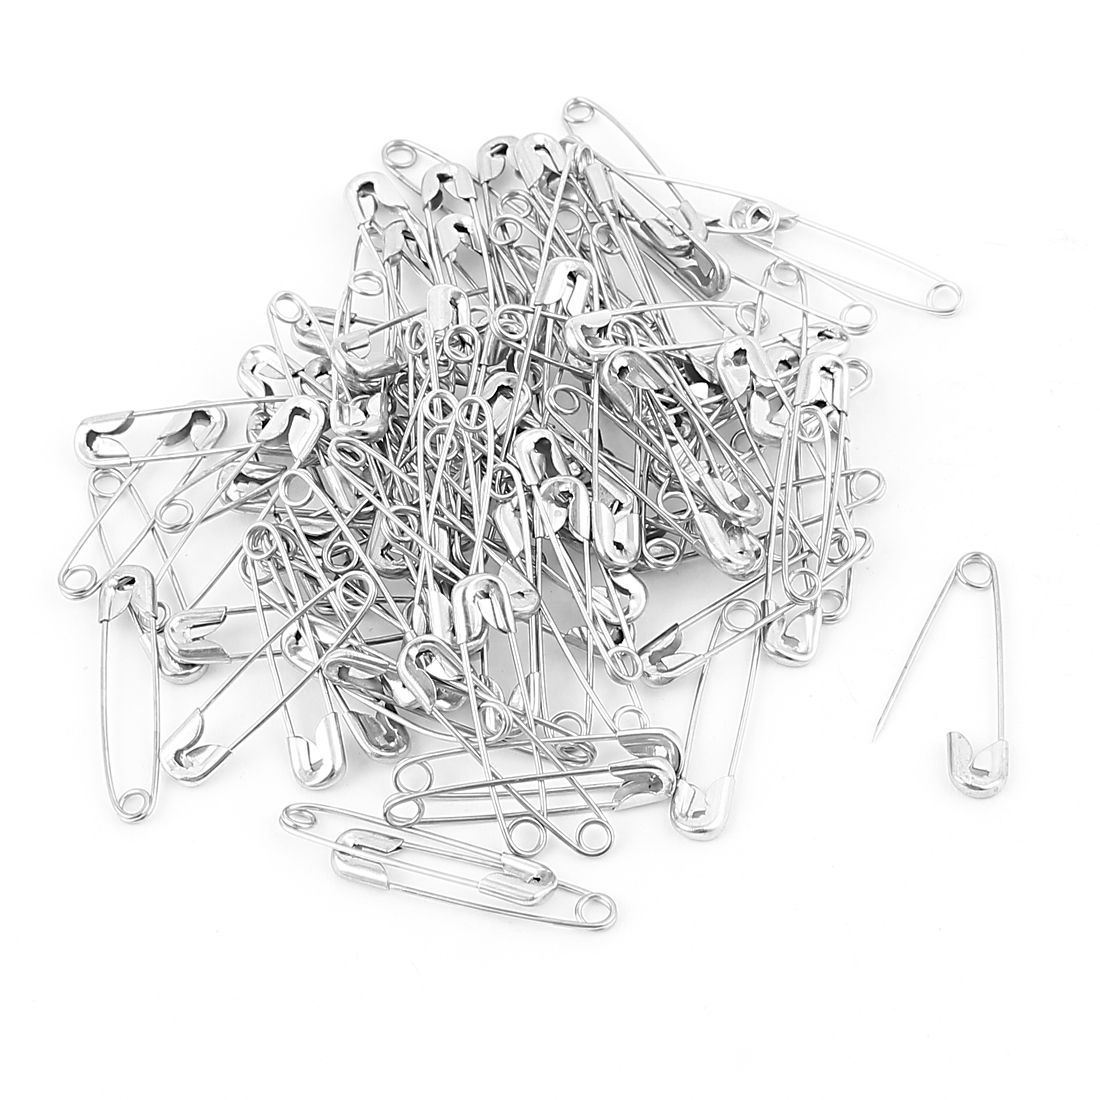 100 Pcs Metal Clothing Trimming Fastening Safety Pins 25mm x 5mm Silver Tone